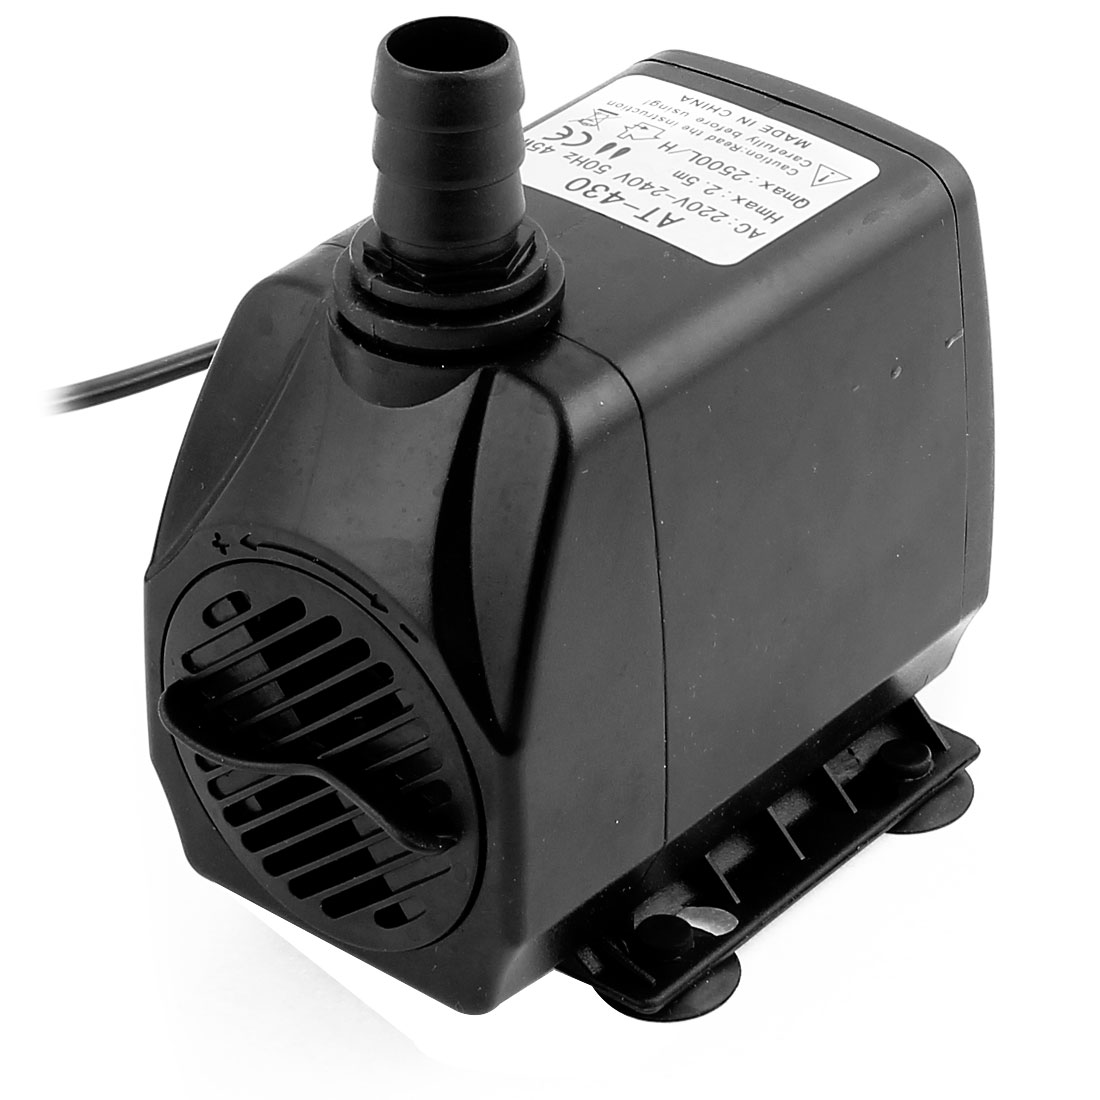 AC 220V-240V AU Plug 45W Electric Submersible Water Pump for Aquarium Fountain Pond w Switch